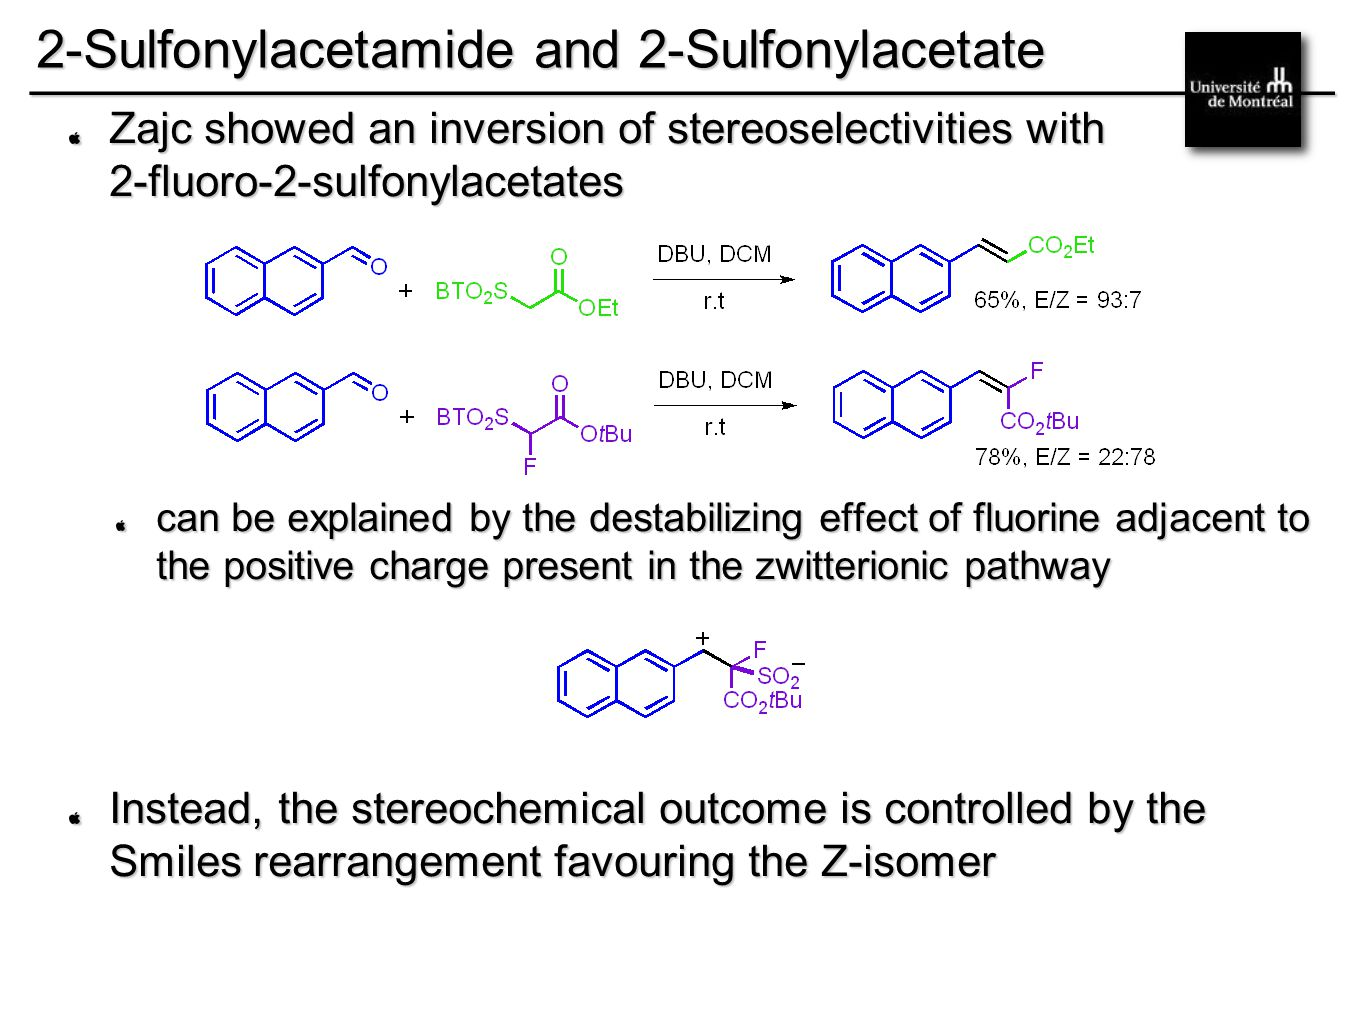 __________________________________________ 2-Sulfonylacetamide and 2-Sulfonylacetate Zajc showed an inversion of stereoselectivities with 2-fluoro-2-sulfonylacetates can be explained by the destabilizing effect of fluorine adjacent to the positive charge present in the zwitterionic pathway Instead, the stereochemical outcome is controlled by the Smiles rearrangement favouring the Z-isomer